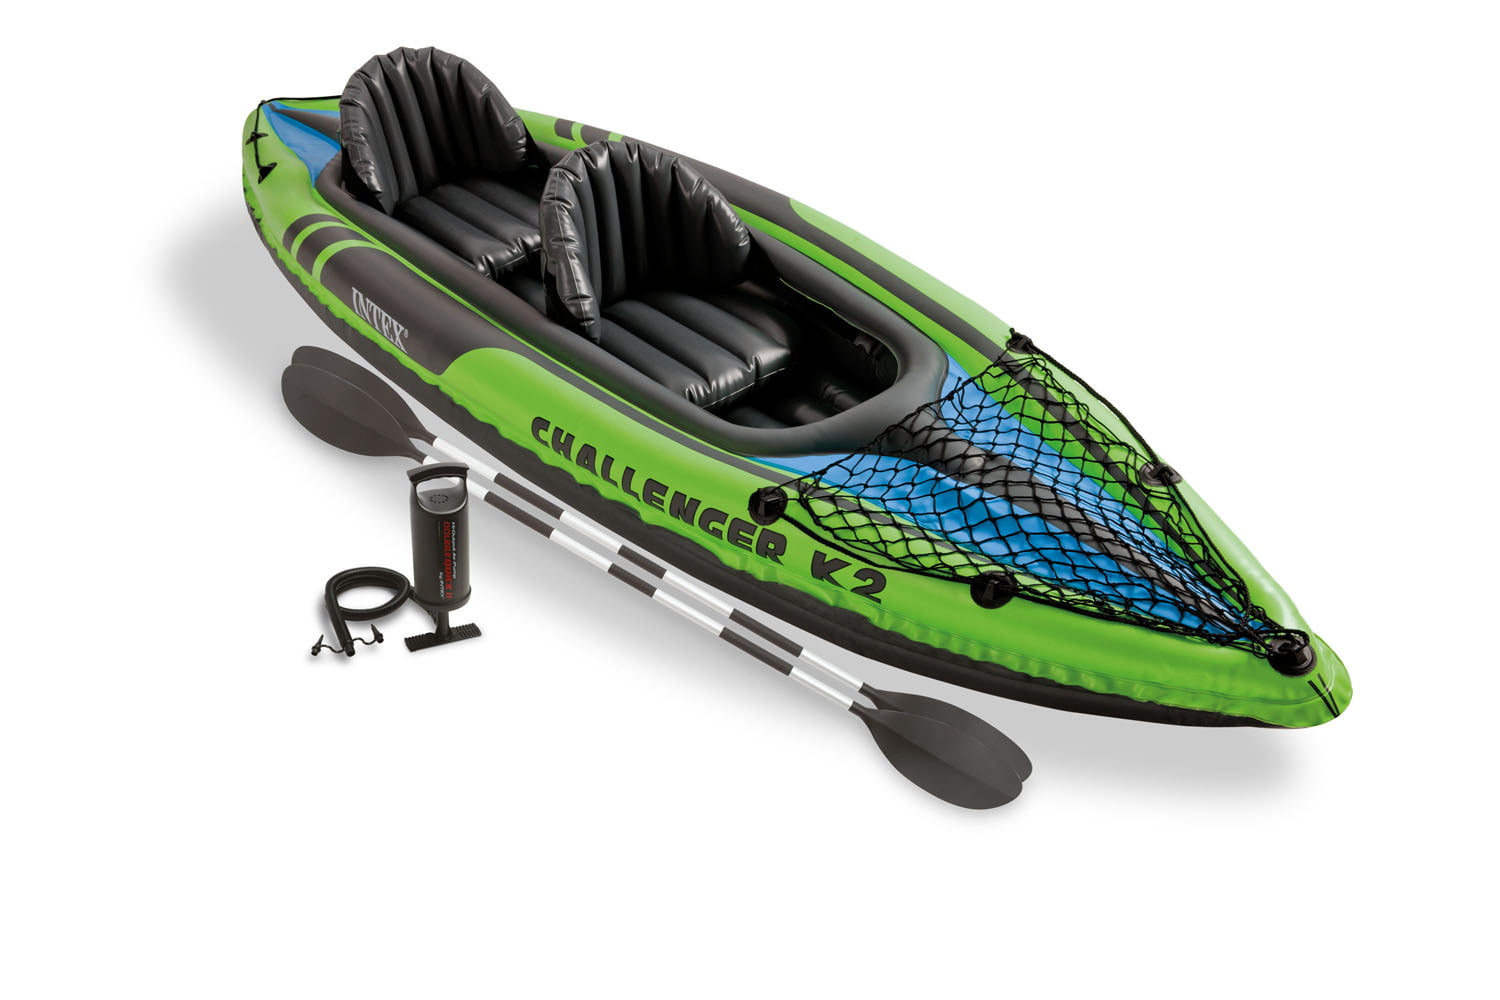 Intex Challenger K2 Inflatable Kayak with Oars and Hand Pump by Intex Recreation Corp.